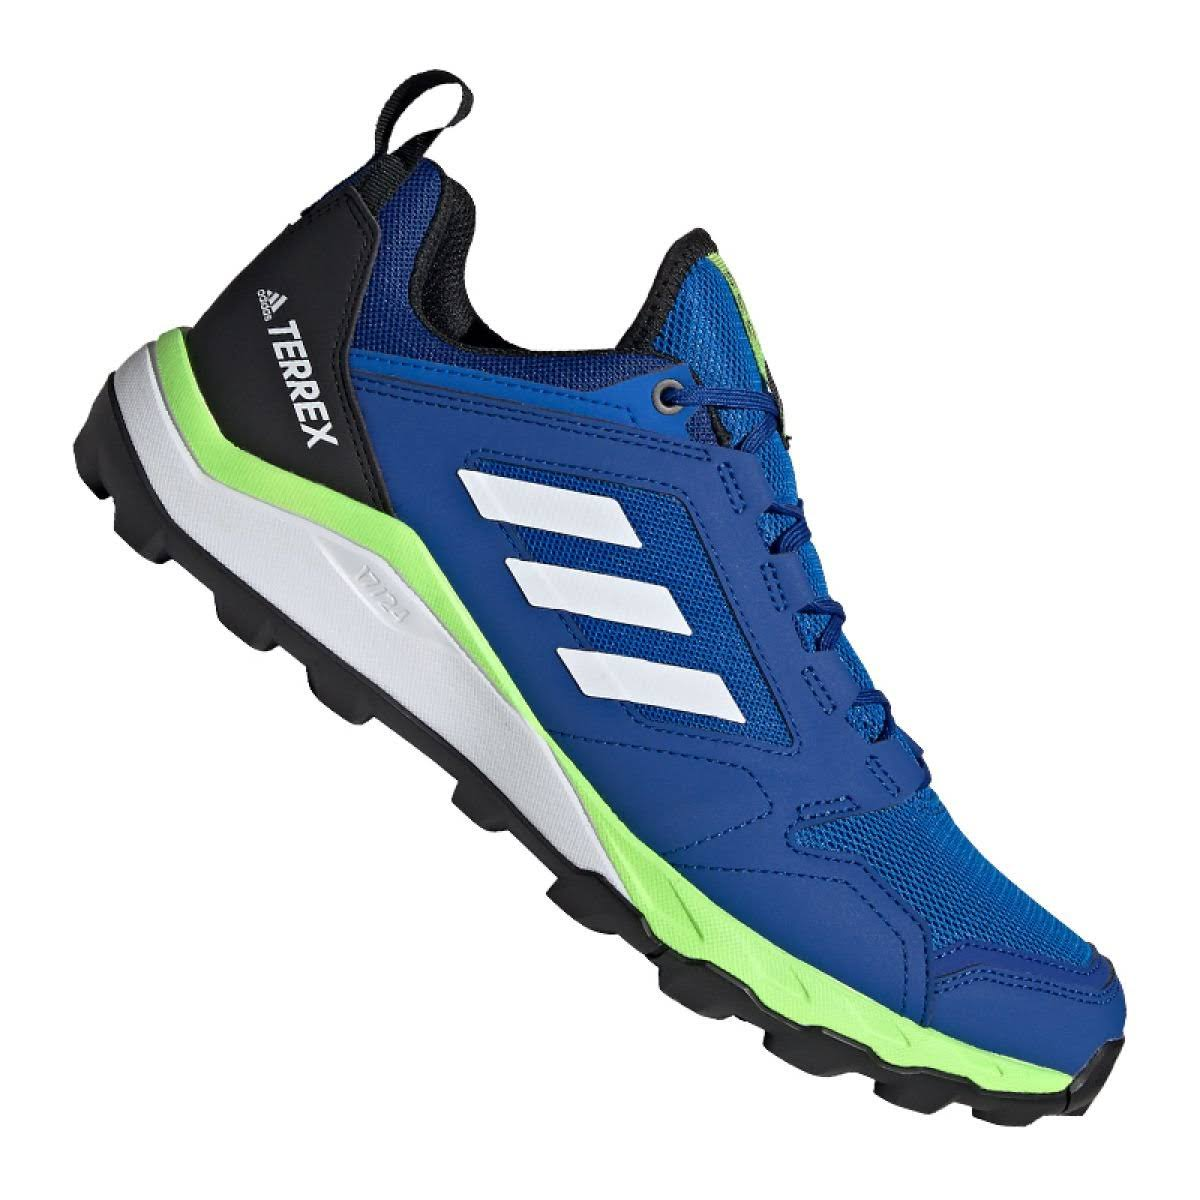 Adidas Terrex Agravic TR Trail Running Shoes - Blue - 10